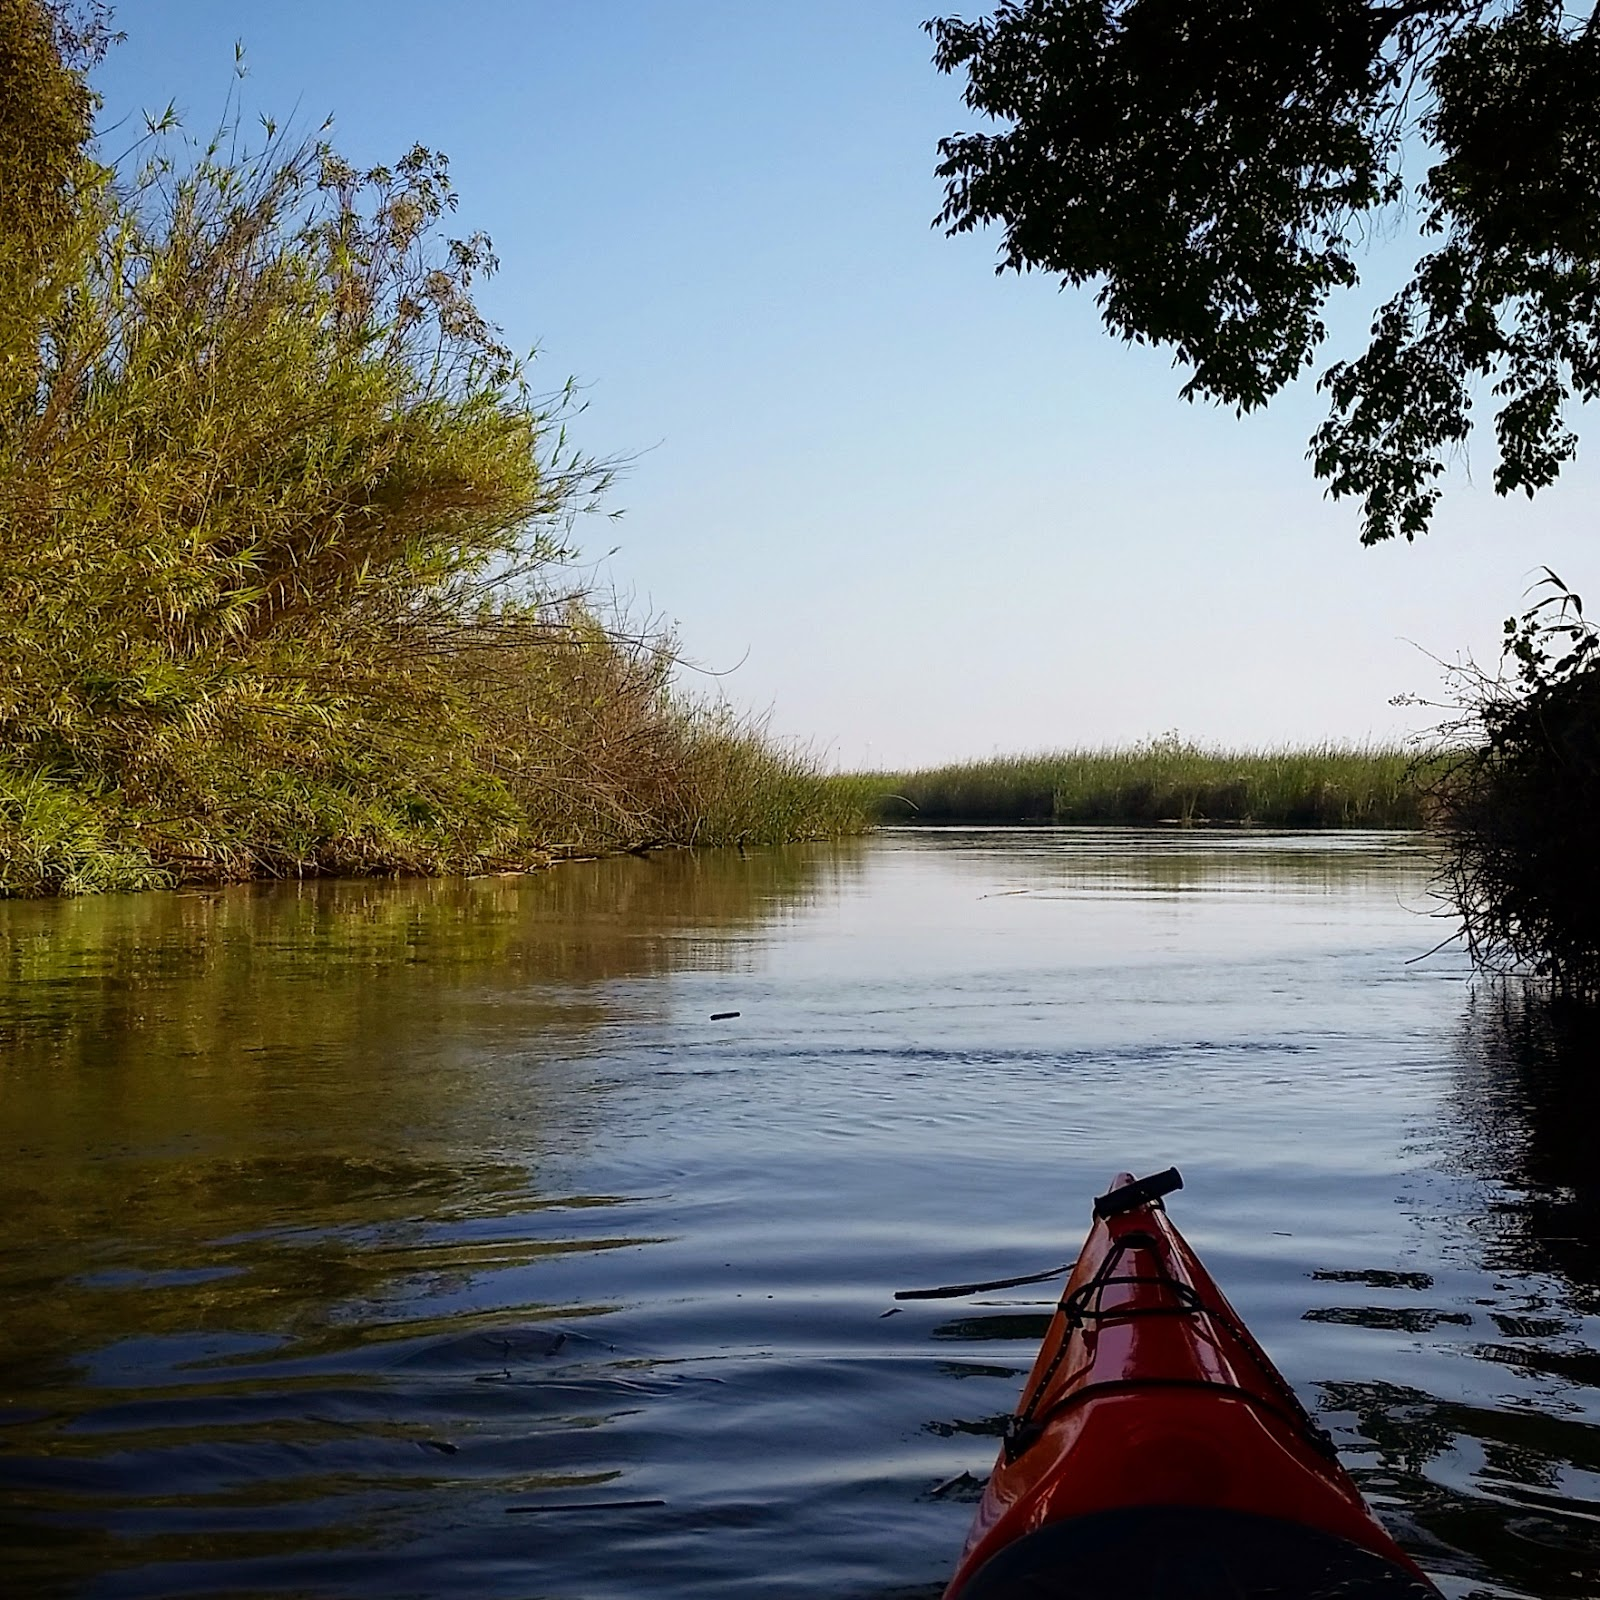 Kayaking the california delta antioch to sherman island waterfowl we paddled against a gentle current until we reached cabin slough where we caught the outgoing tide that led us to an entrance into sherman island waterfowl geenschuldenfo Image collections